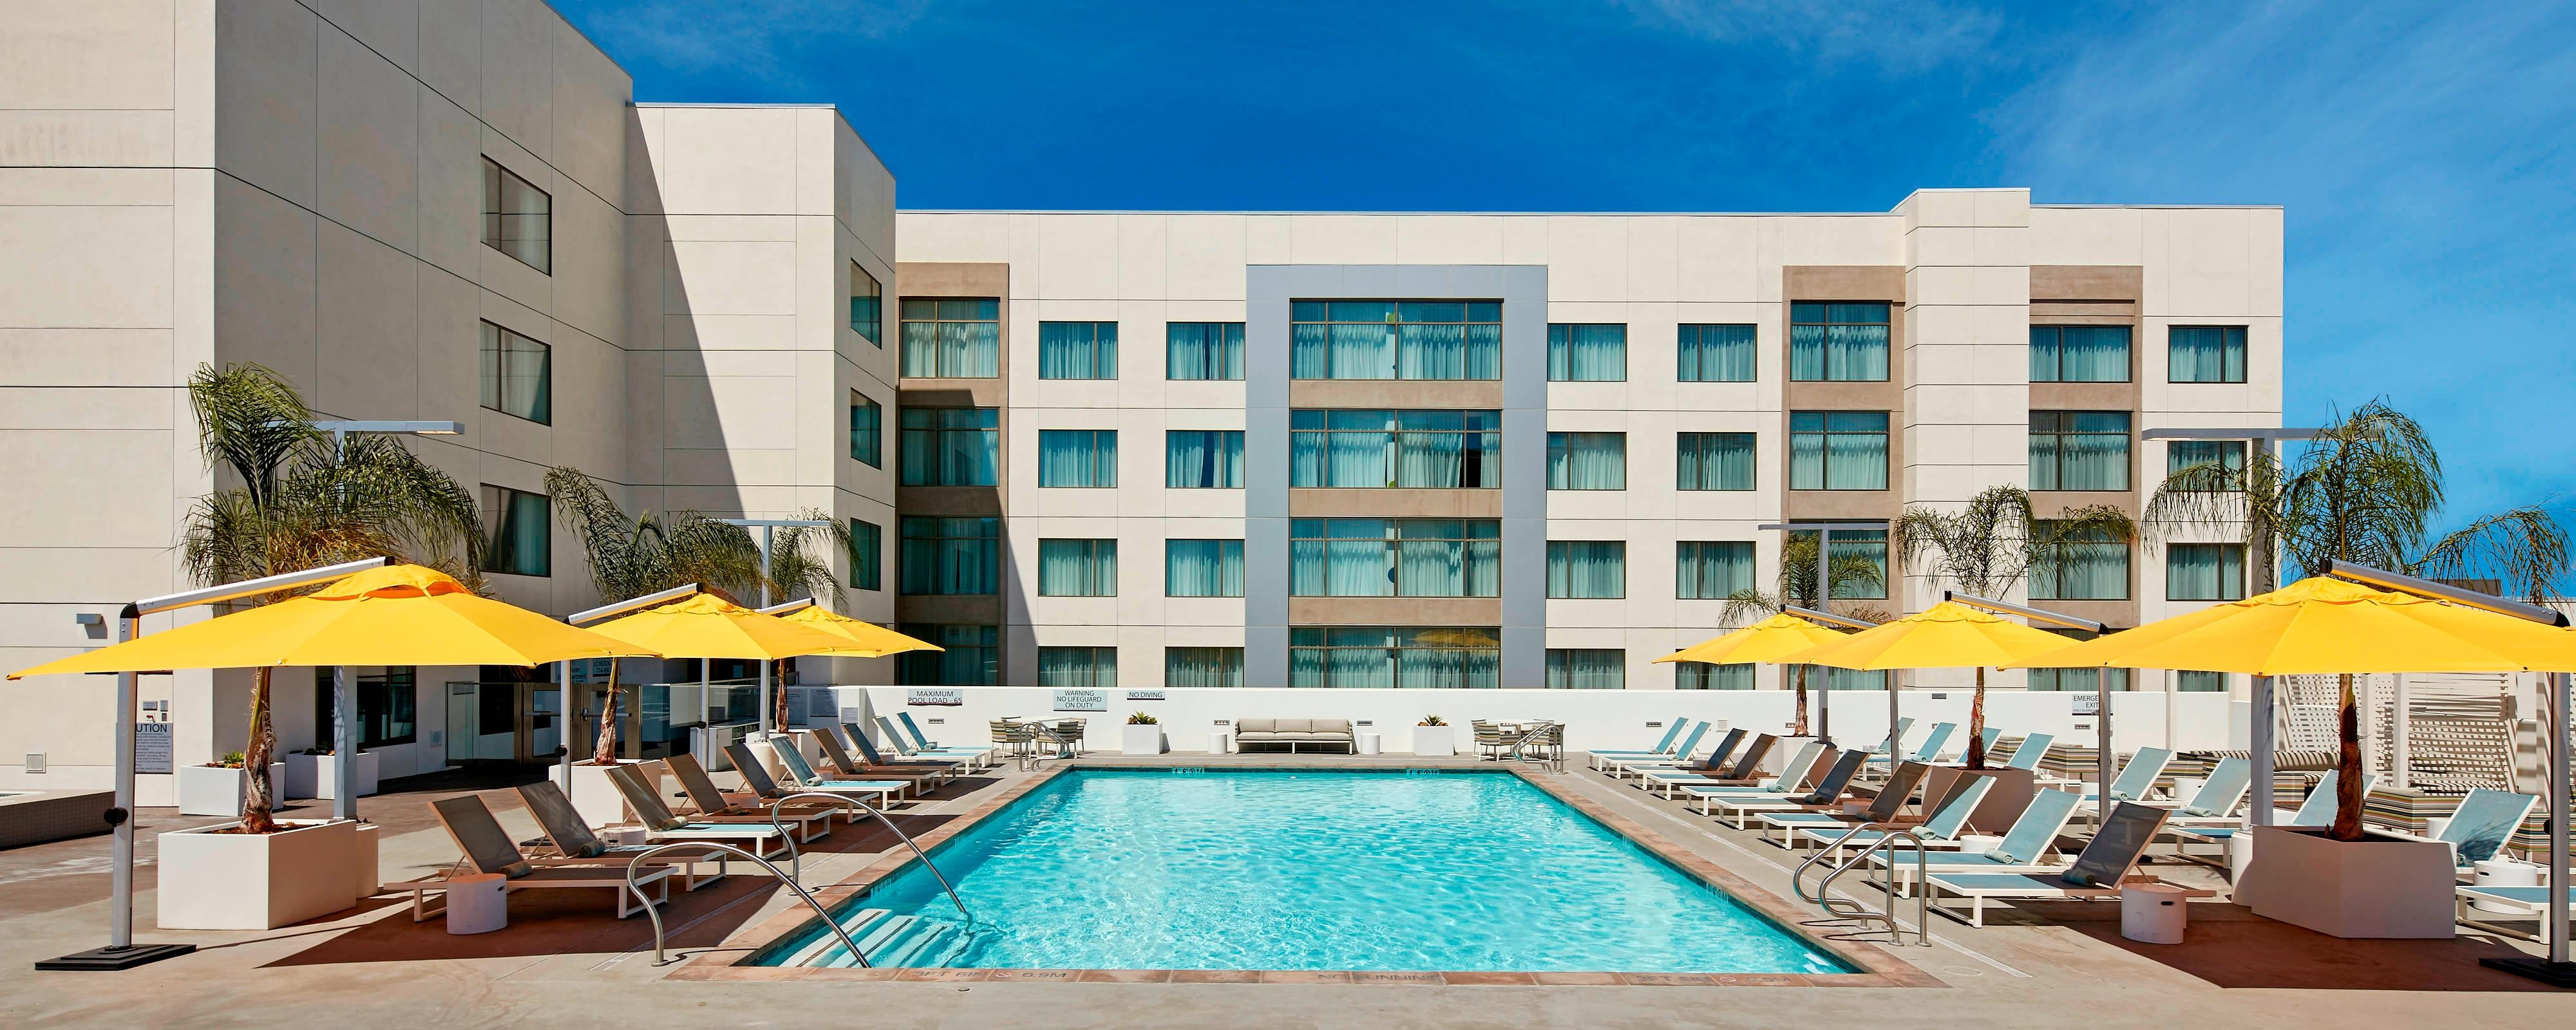 Family Suites near Disneyland at Embassy Anaheim South